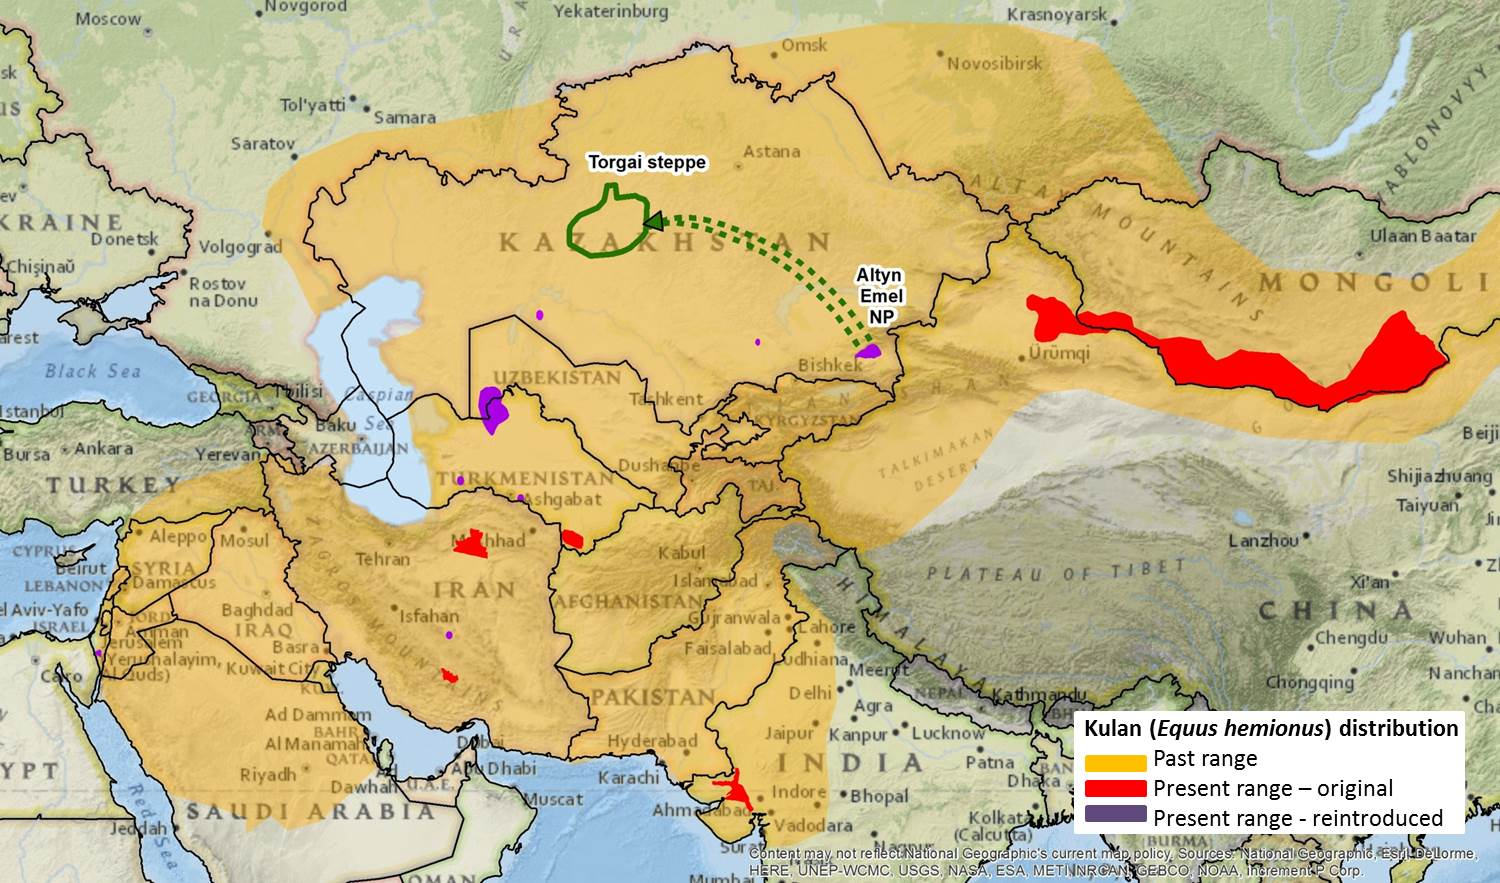 The green arrow shows the relocation effort of the kulan from Altyn Emel to the Torgai steppe. Credit: NINA